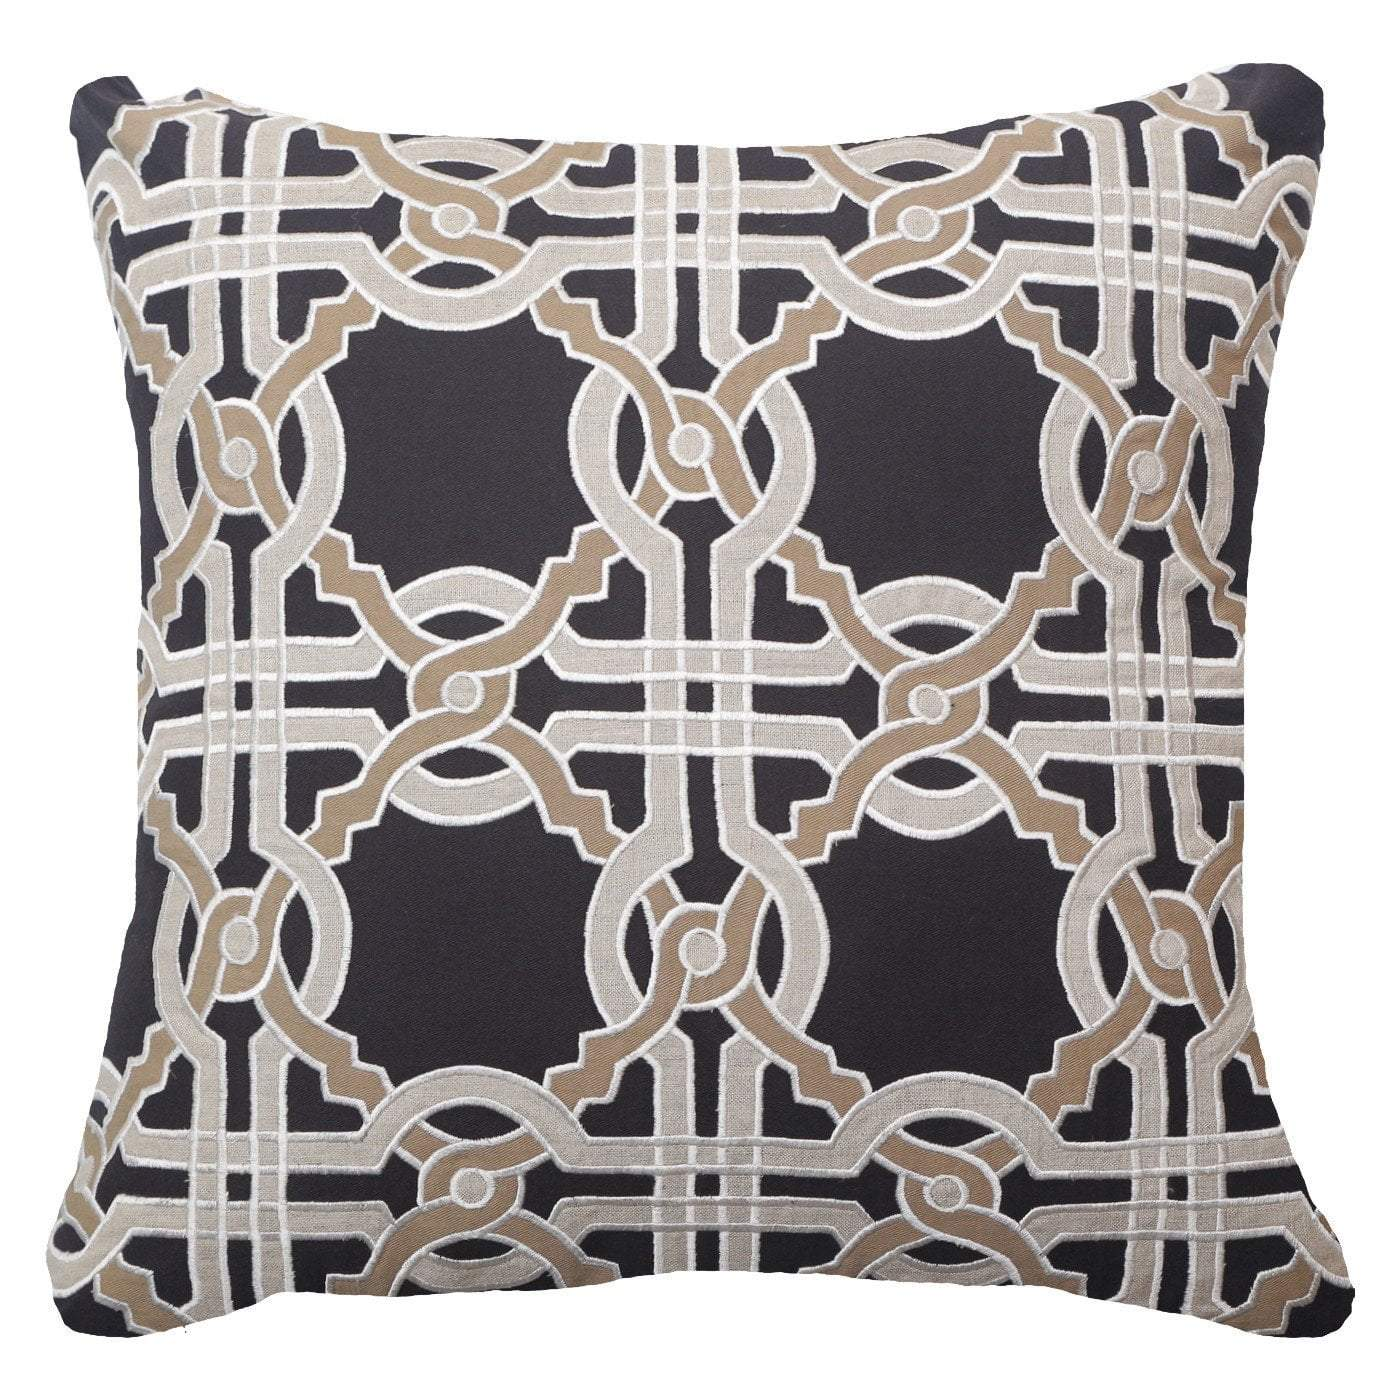 Intertwined Black Lounge Cushion 55x55cm